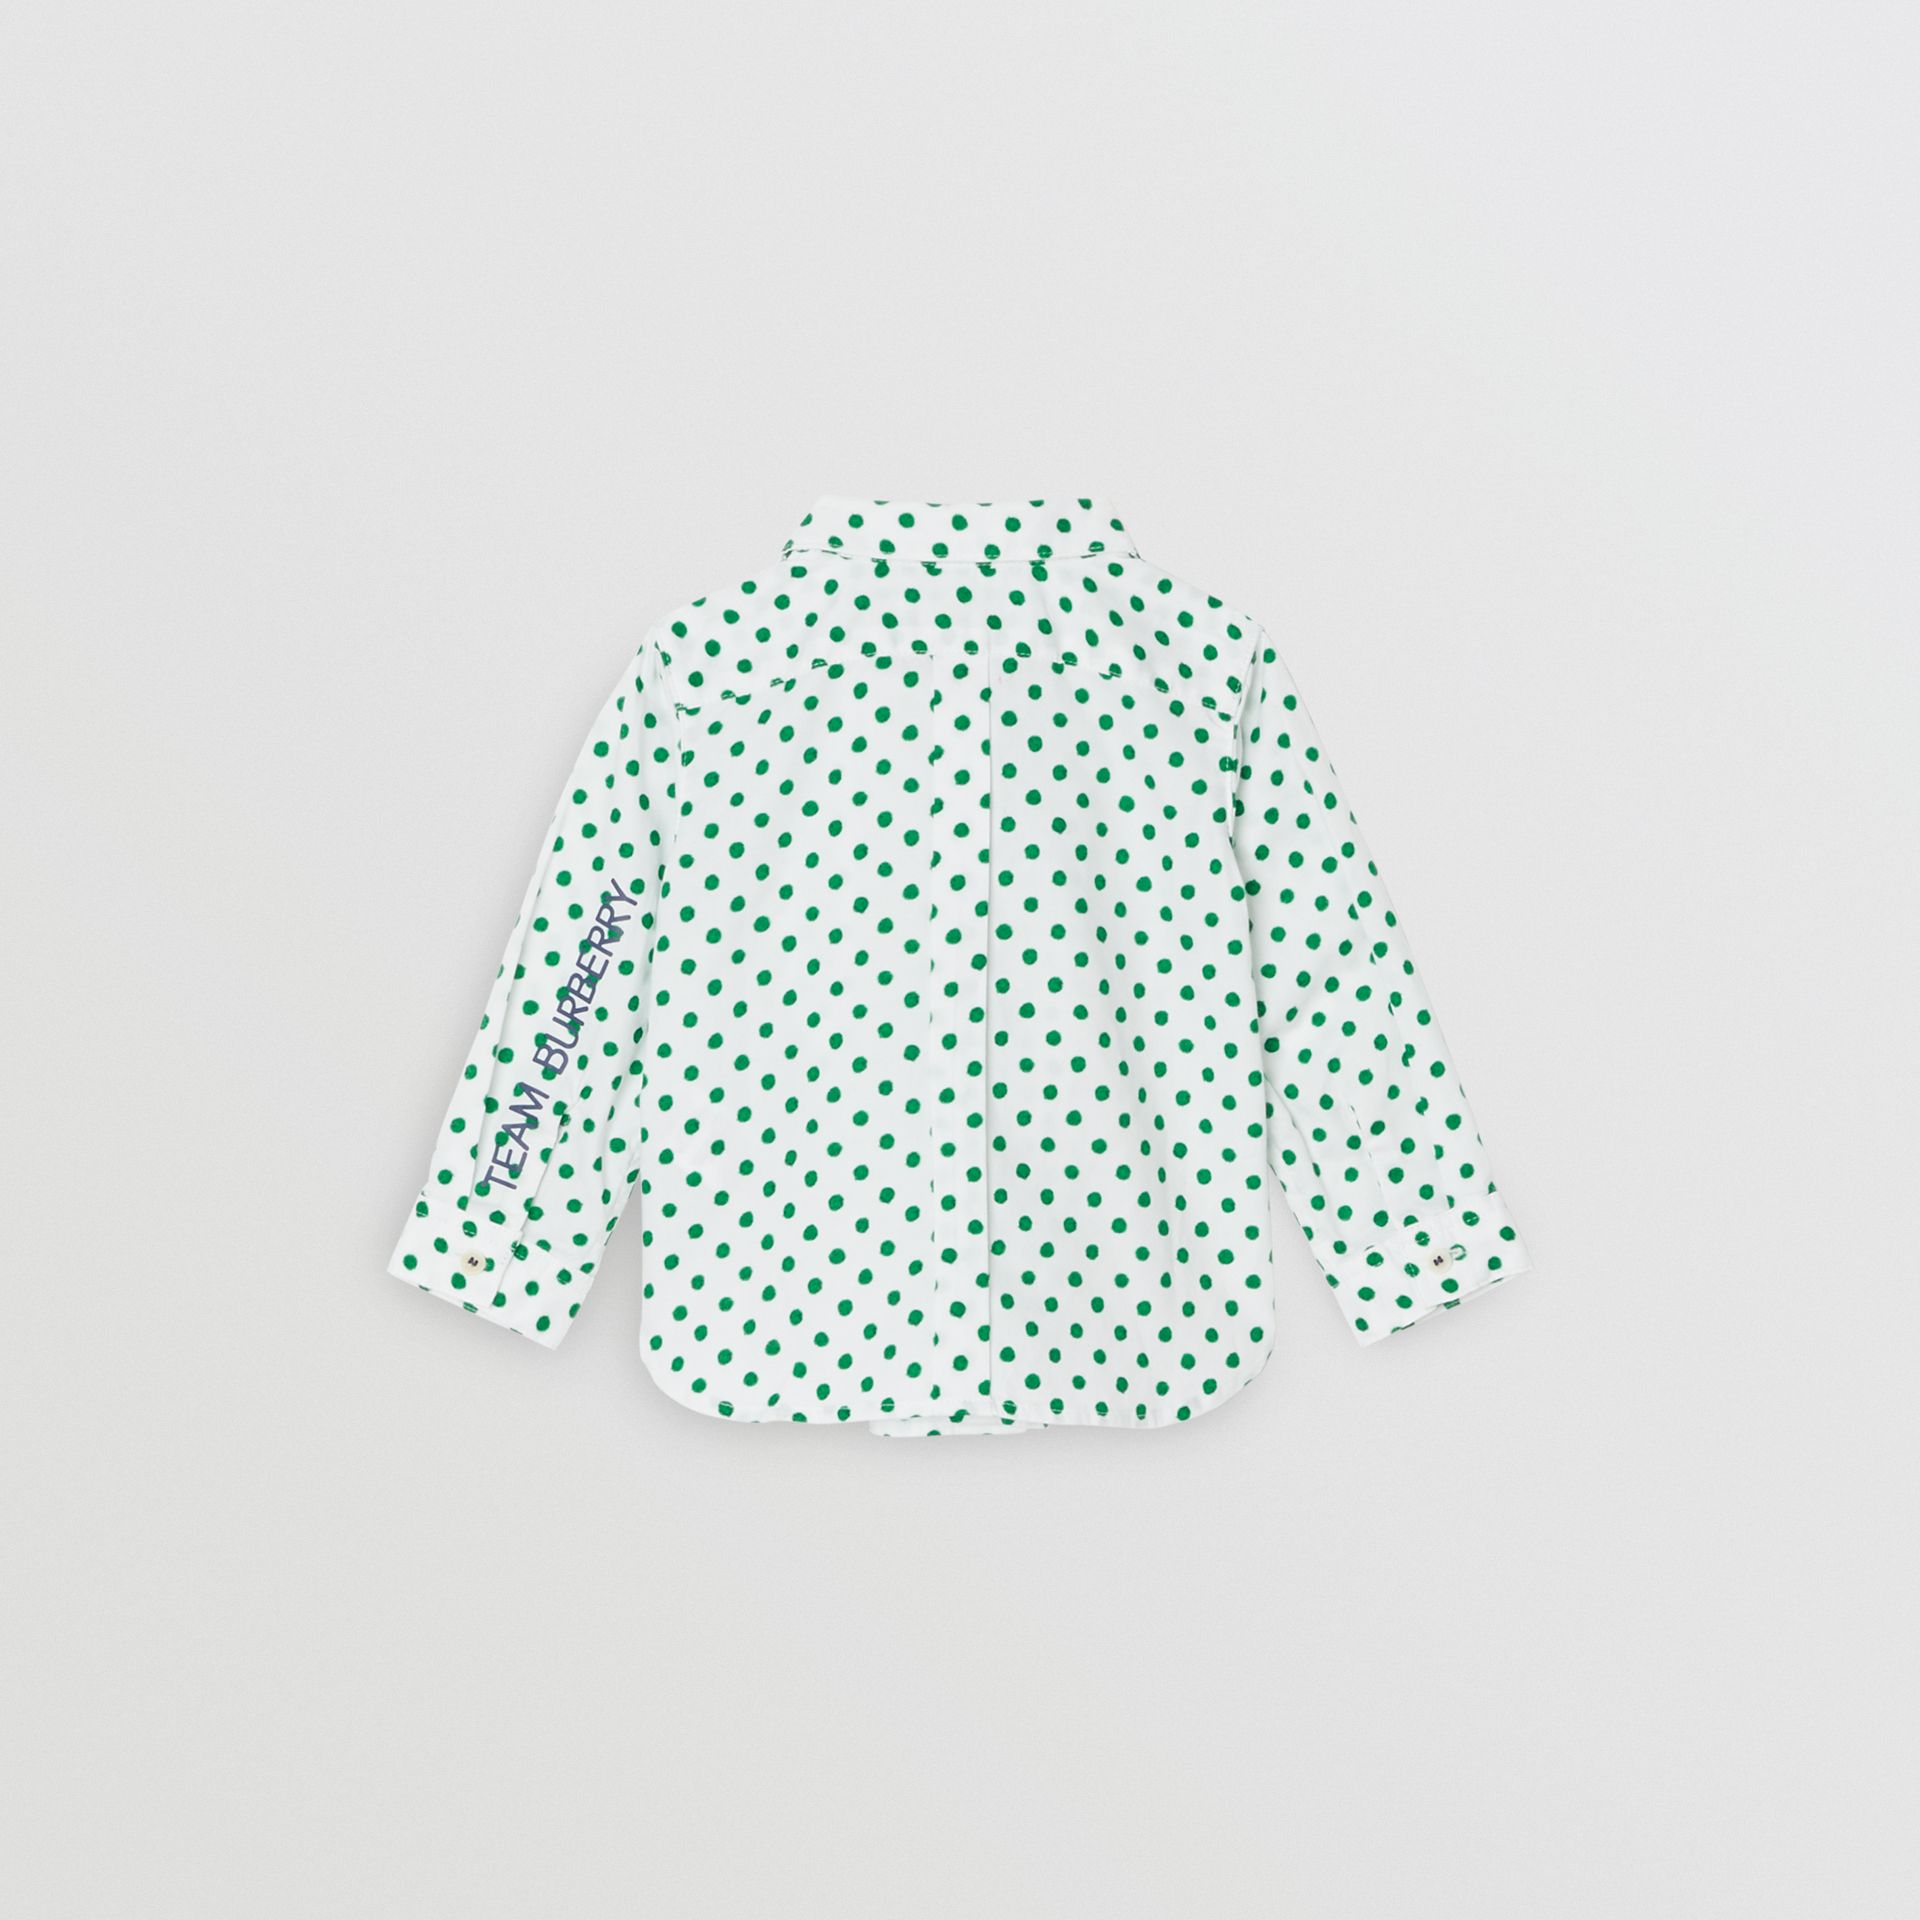 Polka Dot Cotton Oxford Shirt in Emerald Green - Children | Burberry Canada - gallery image 3